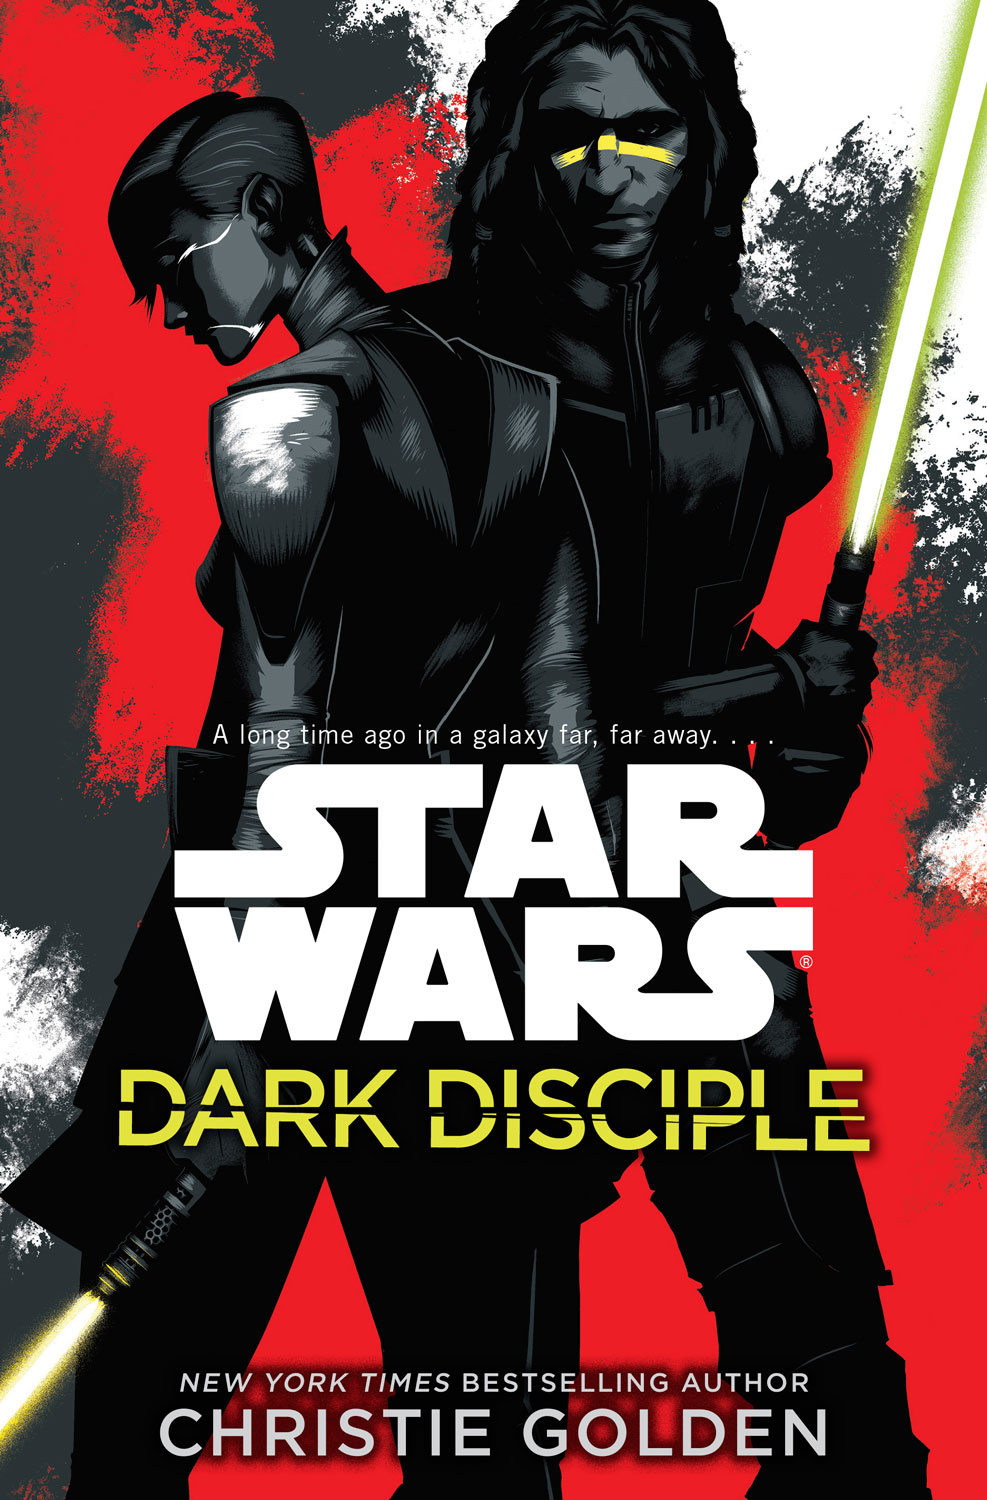 Dark Disciple book cover